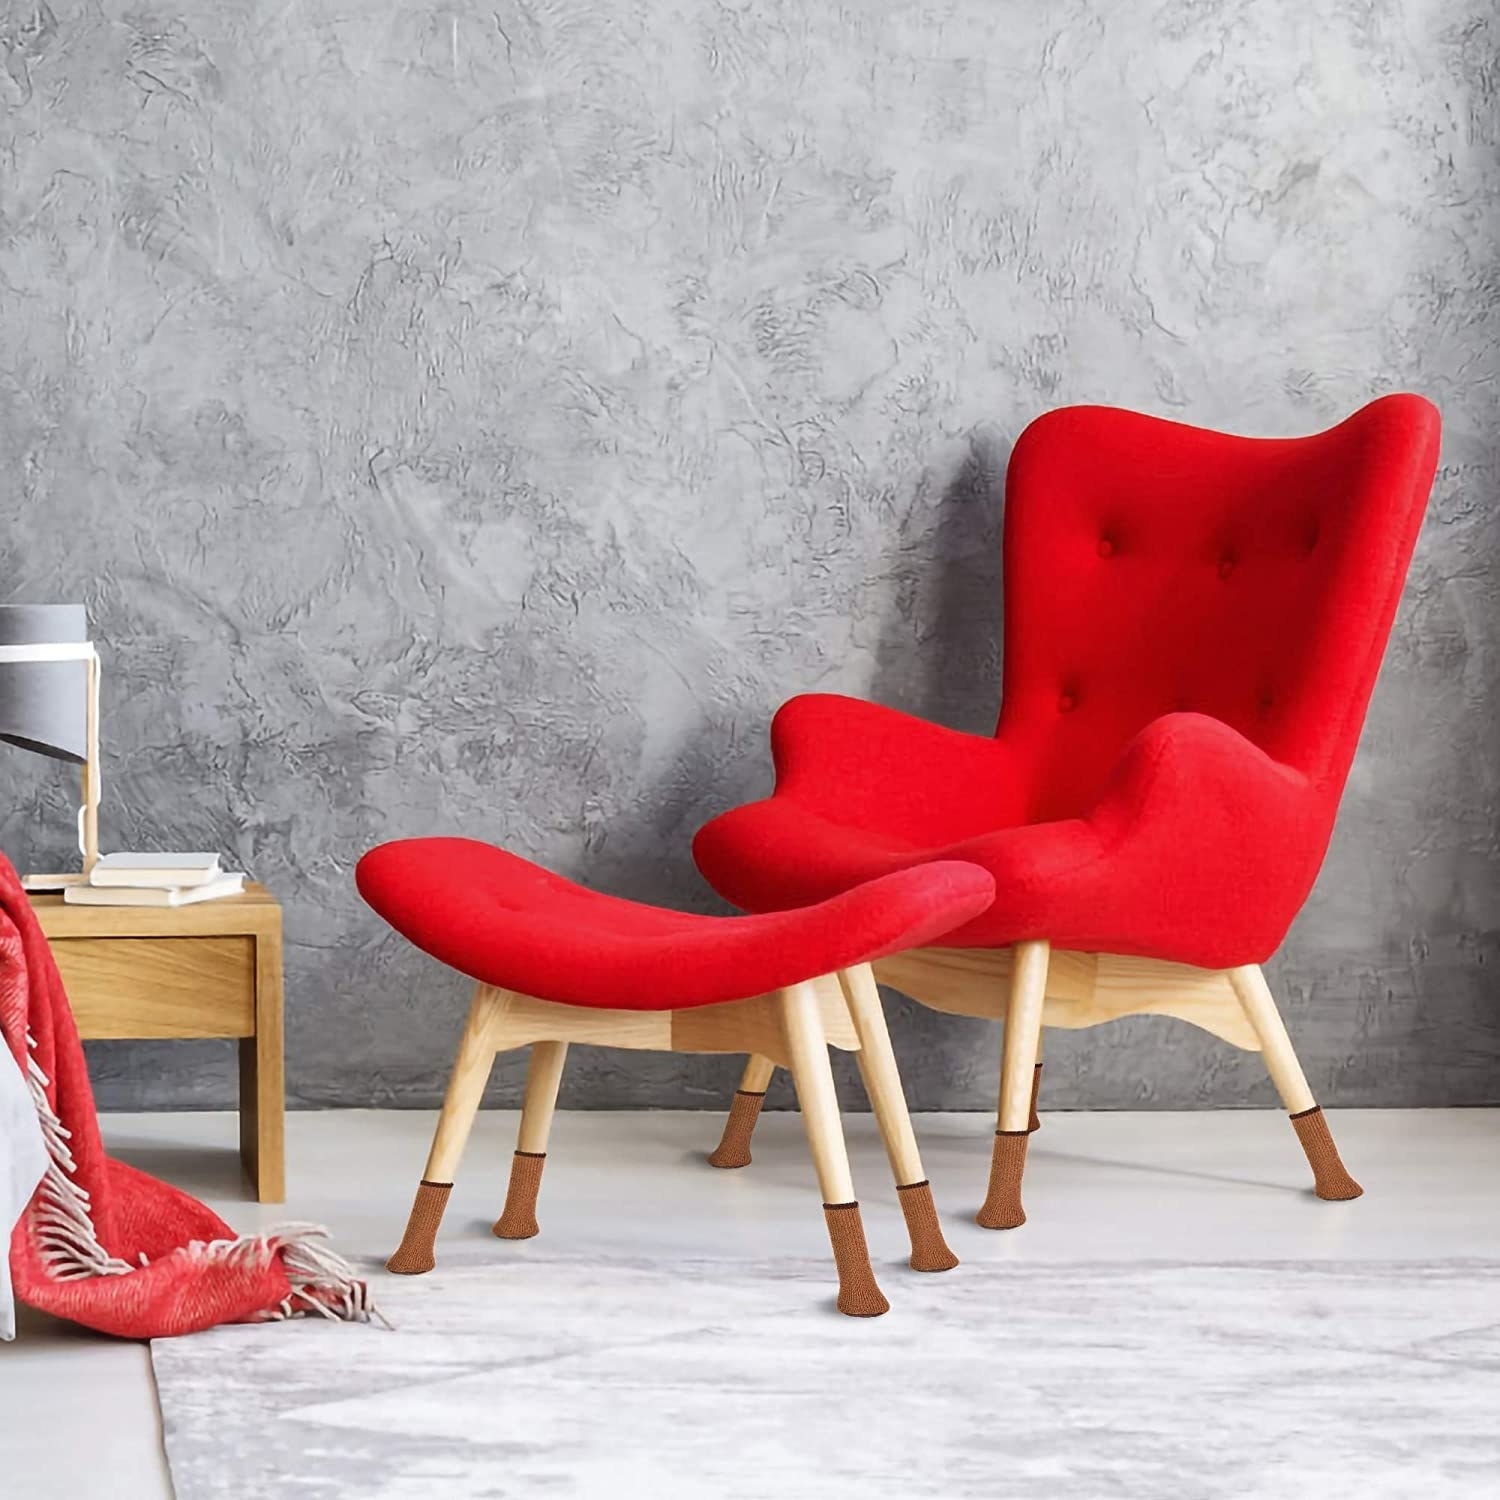 Bright red arm chair and foot rest with brown chair socks on the bottom